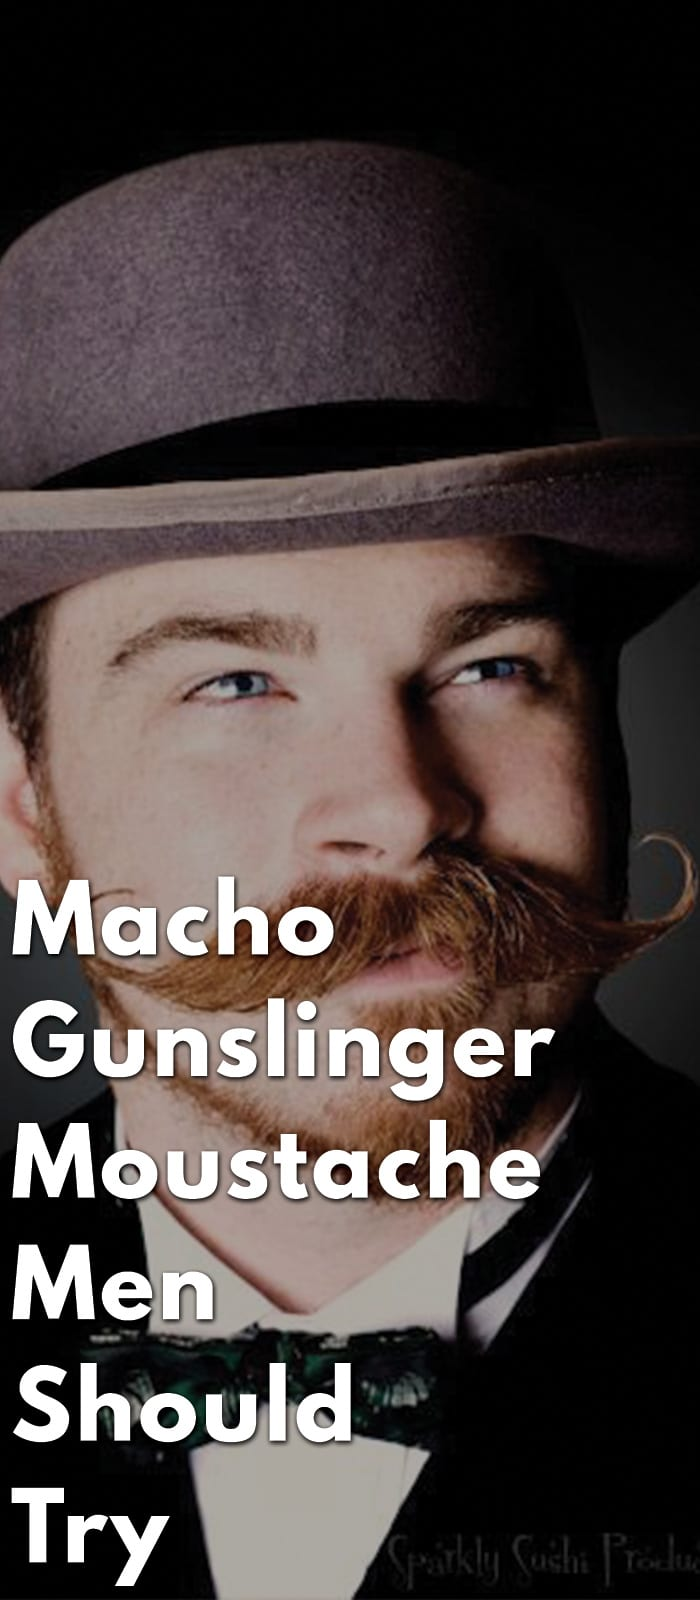 Macho-Gunslinger-Moustache-Men-Should-Try